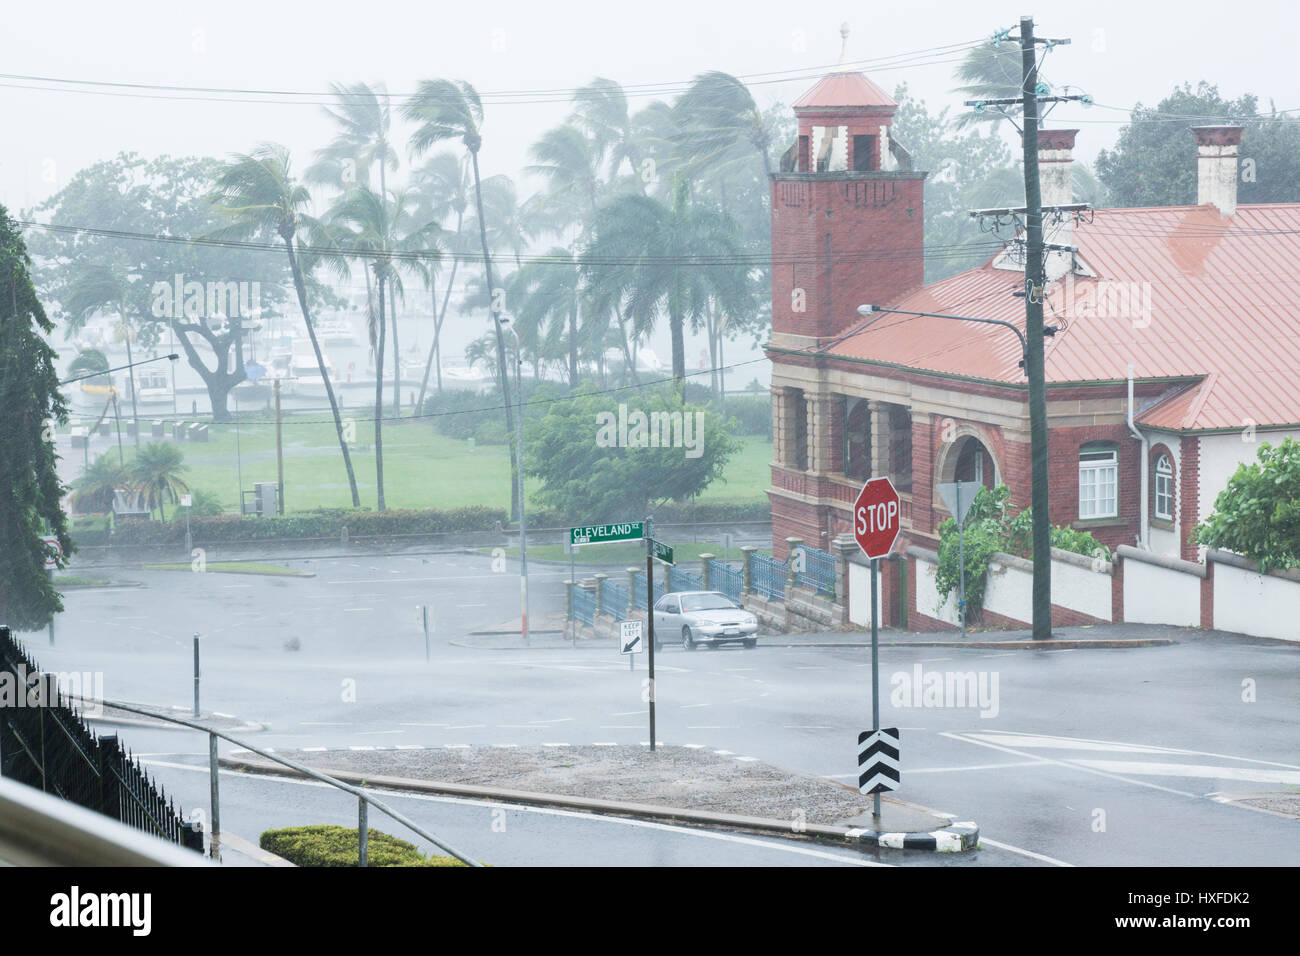 Torrential rain during Cyclone Ita in April, 2014 on The Strand, Townsville, Australia - Stock Image